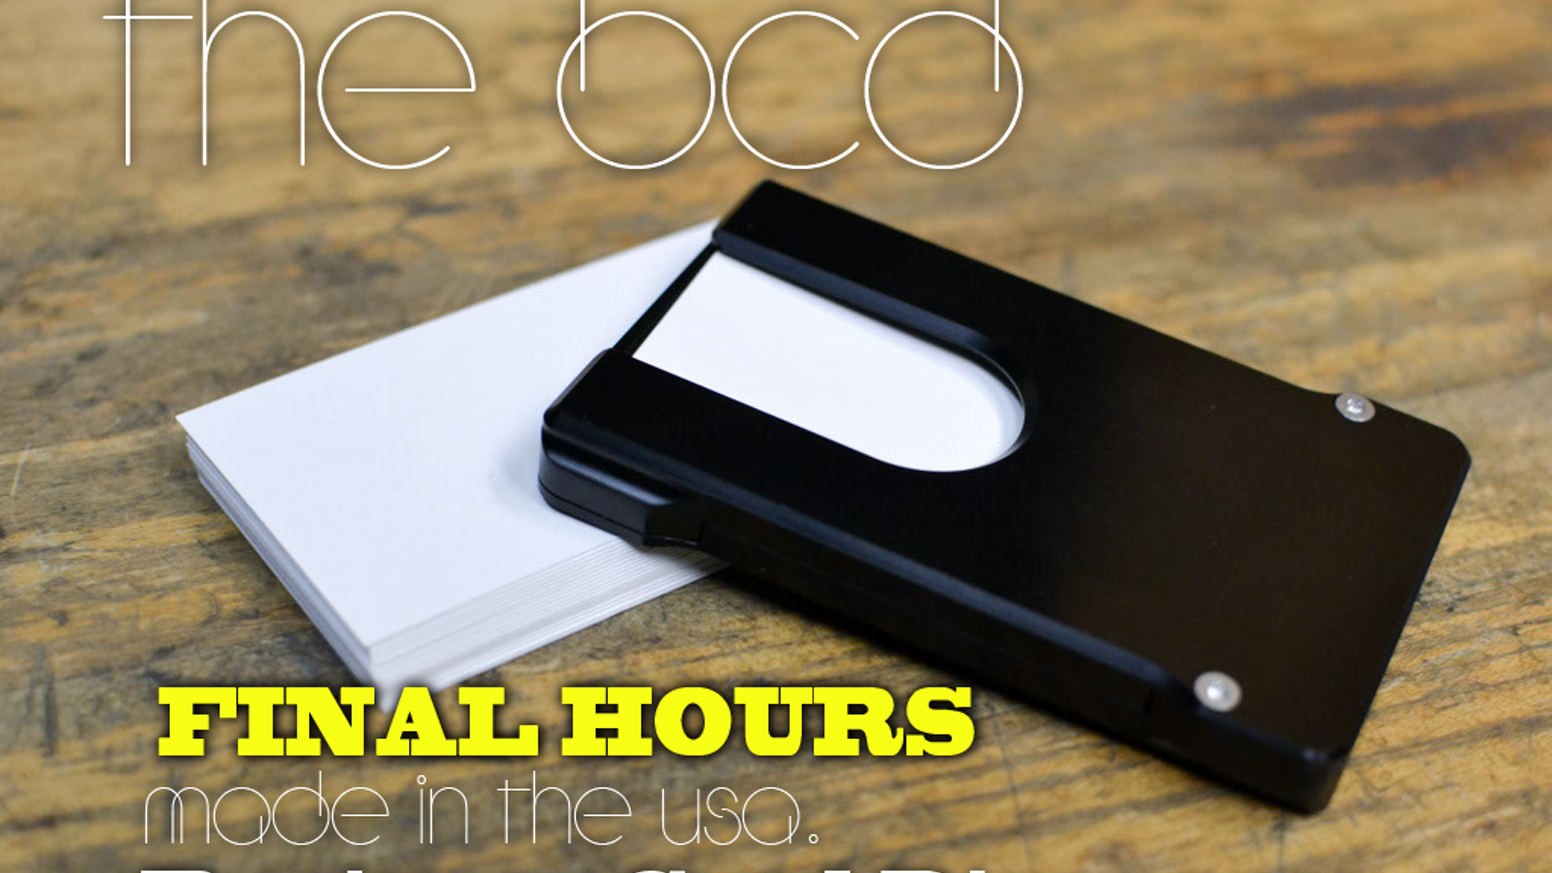 The bcd business card dispenser by cmp kickstarter the bcd business card dispenser magicingreecefo Images